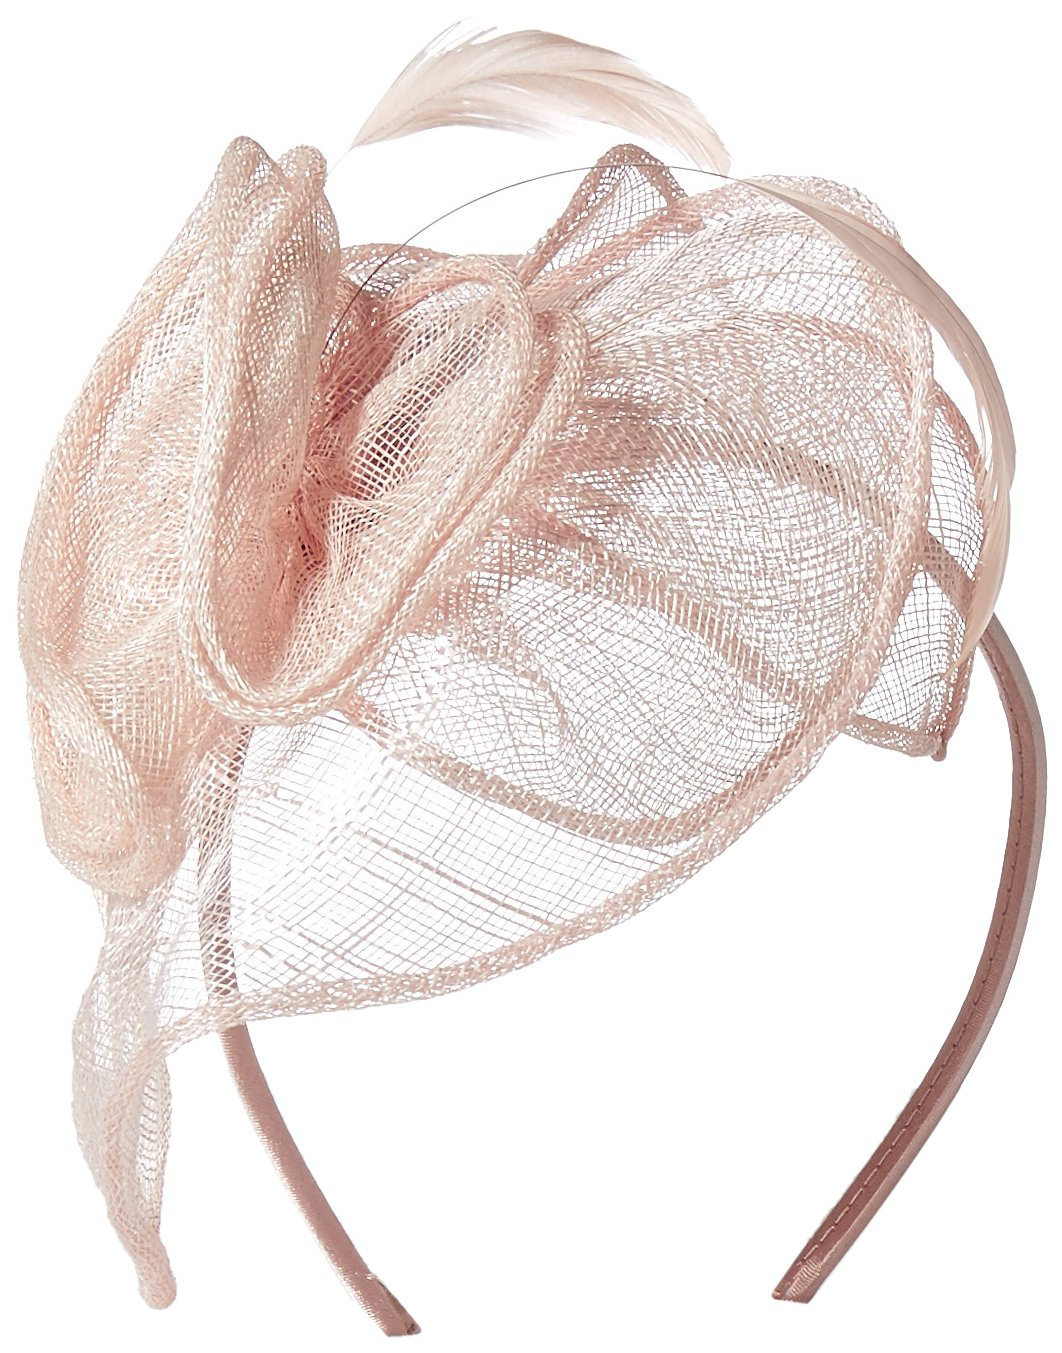 San Diego Hat Company Women's Fasinatior Hat with Rosette and Feathers, Blush, One Size by San Diego Hat Company